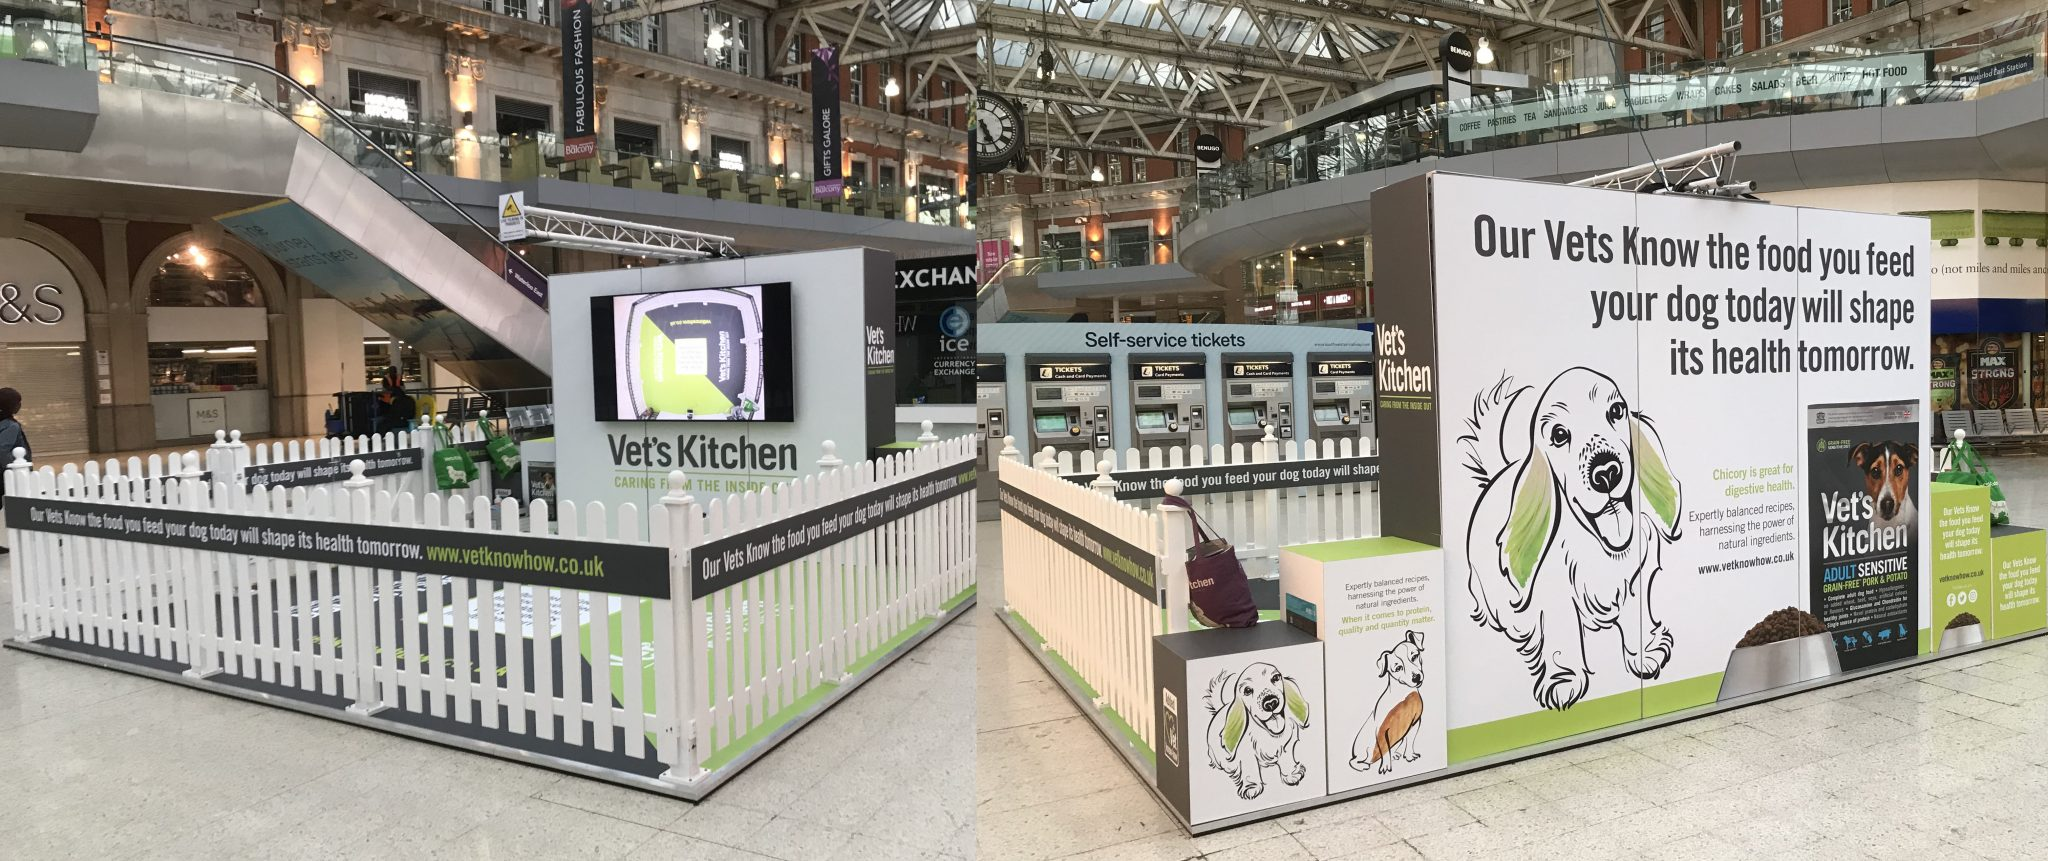 We assisted Vet's Kitchen with stand design, stand build, set-up, breakdown and the running of this promotional event at Waterloo Station, including staff management.